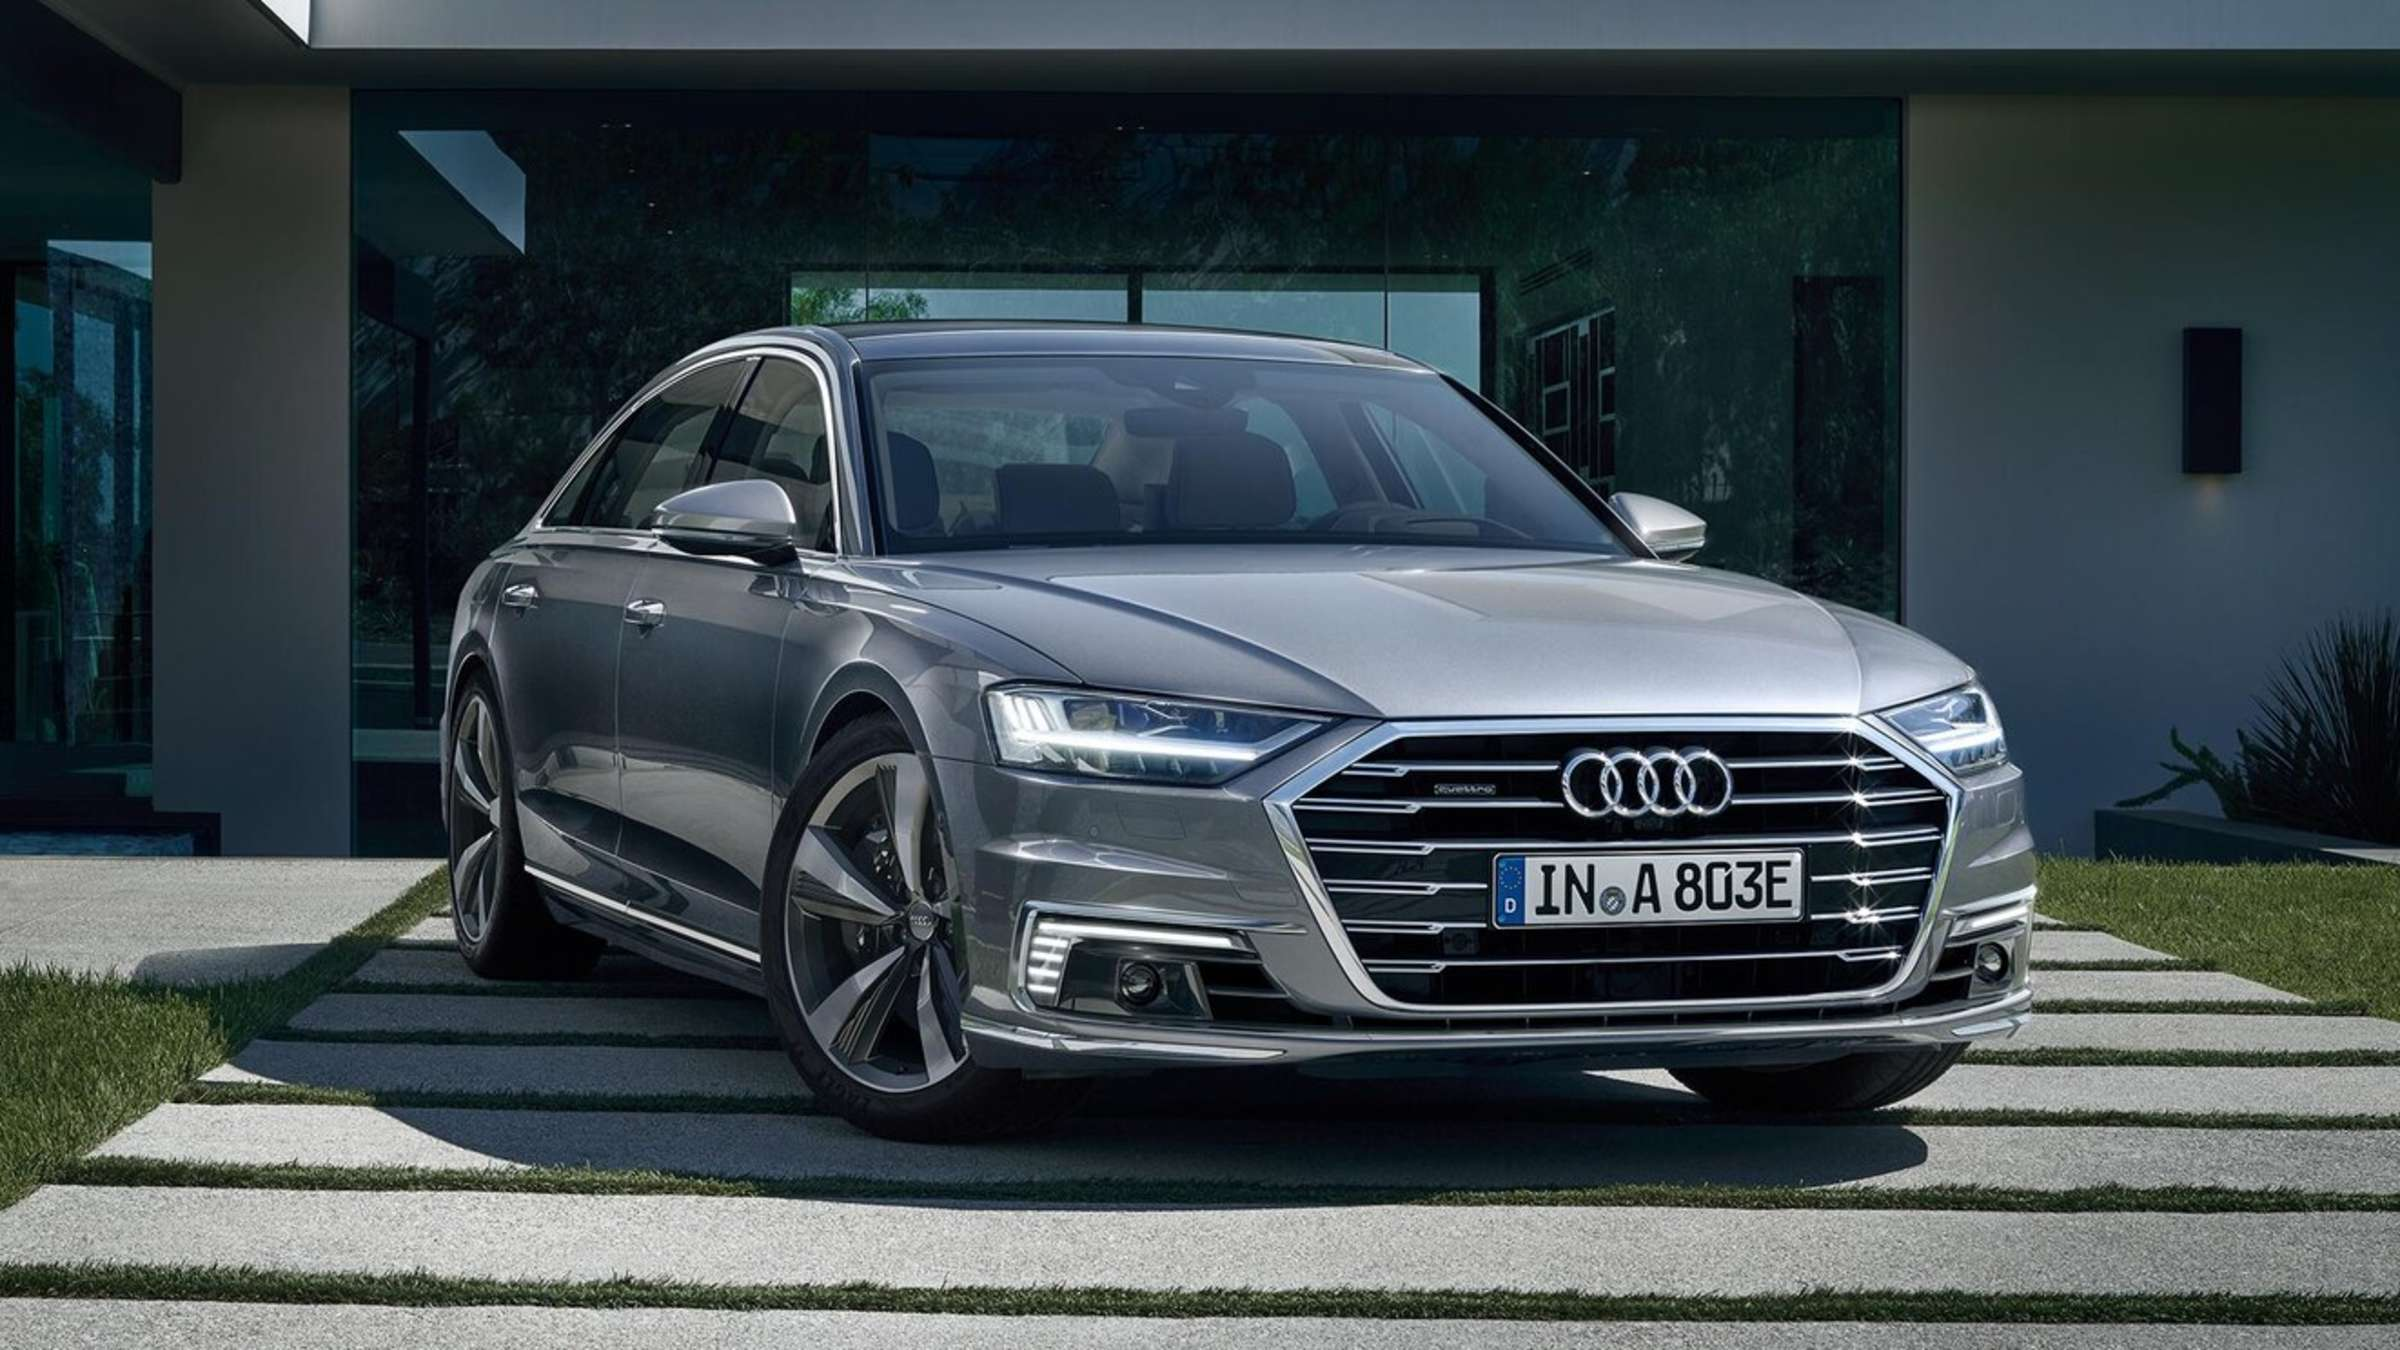 Audi A8 Exterior and Interior